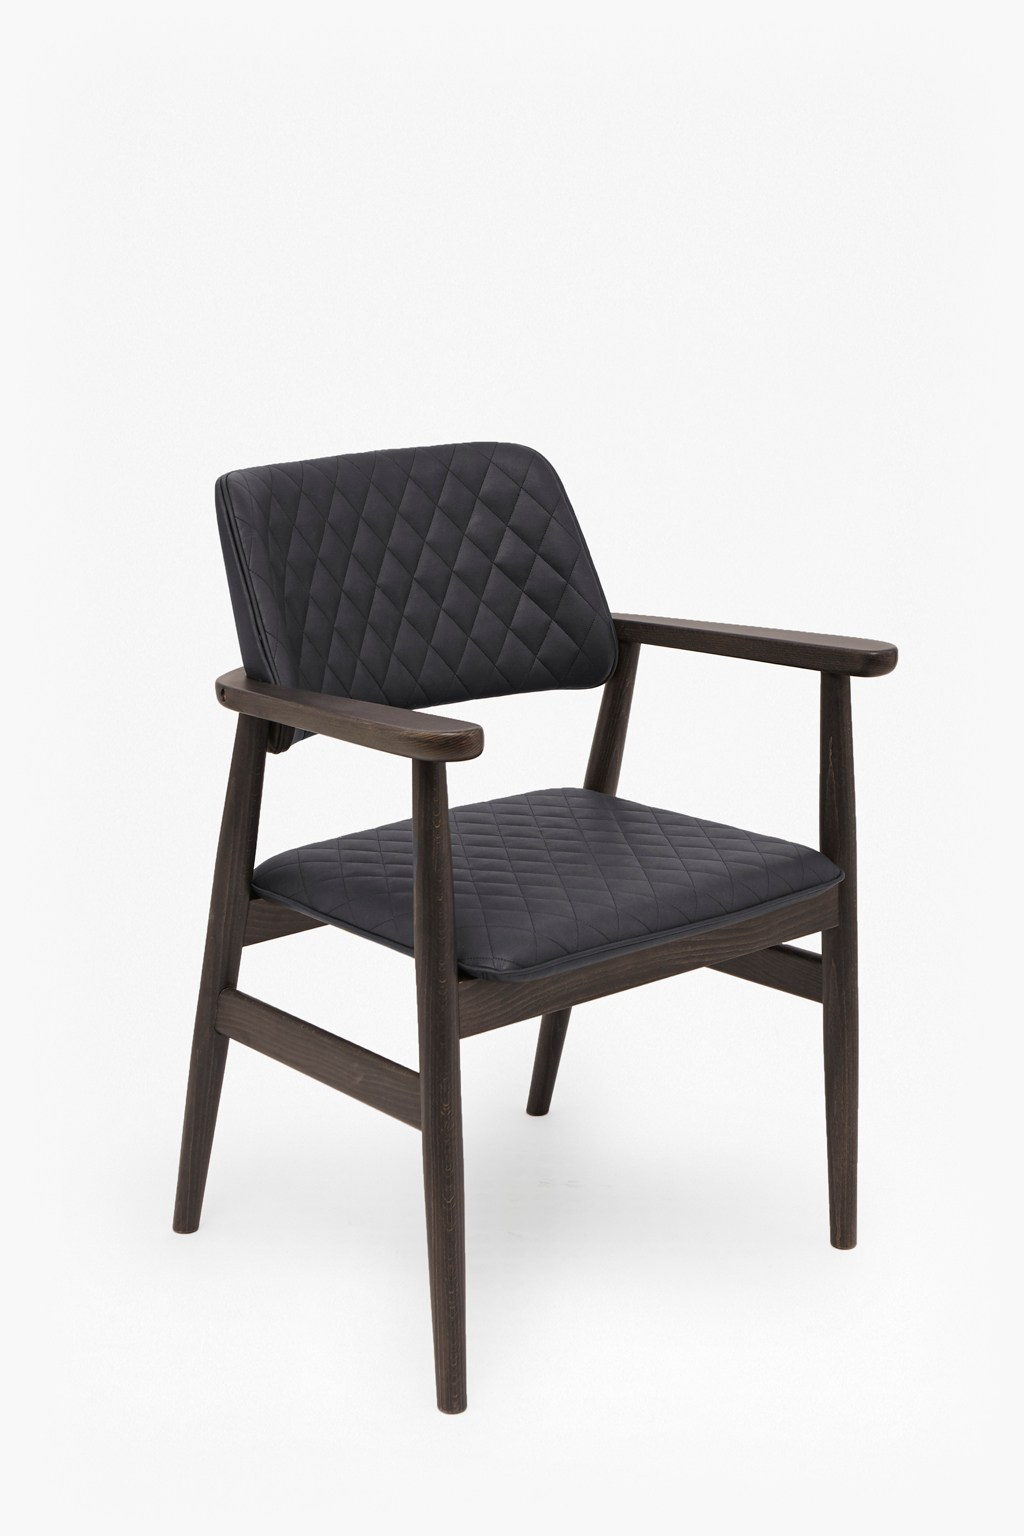 faux leather chair. Veyed Faux Leather Chair. Loading Images. Chair